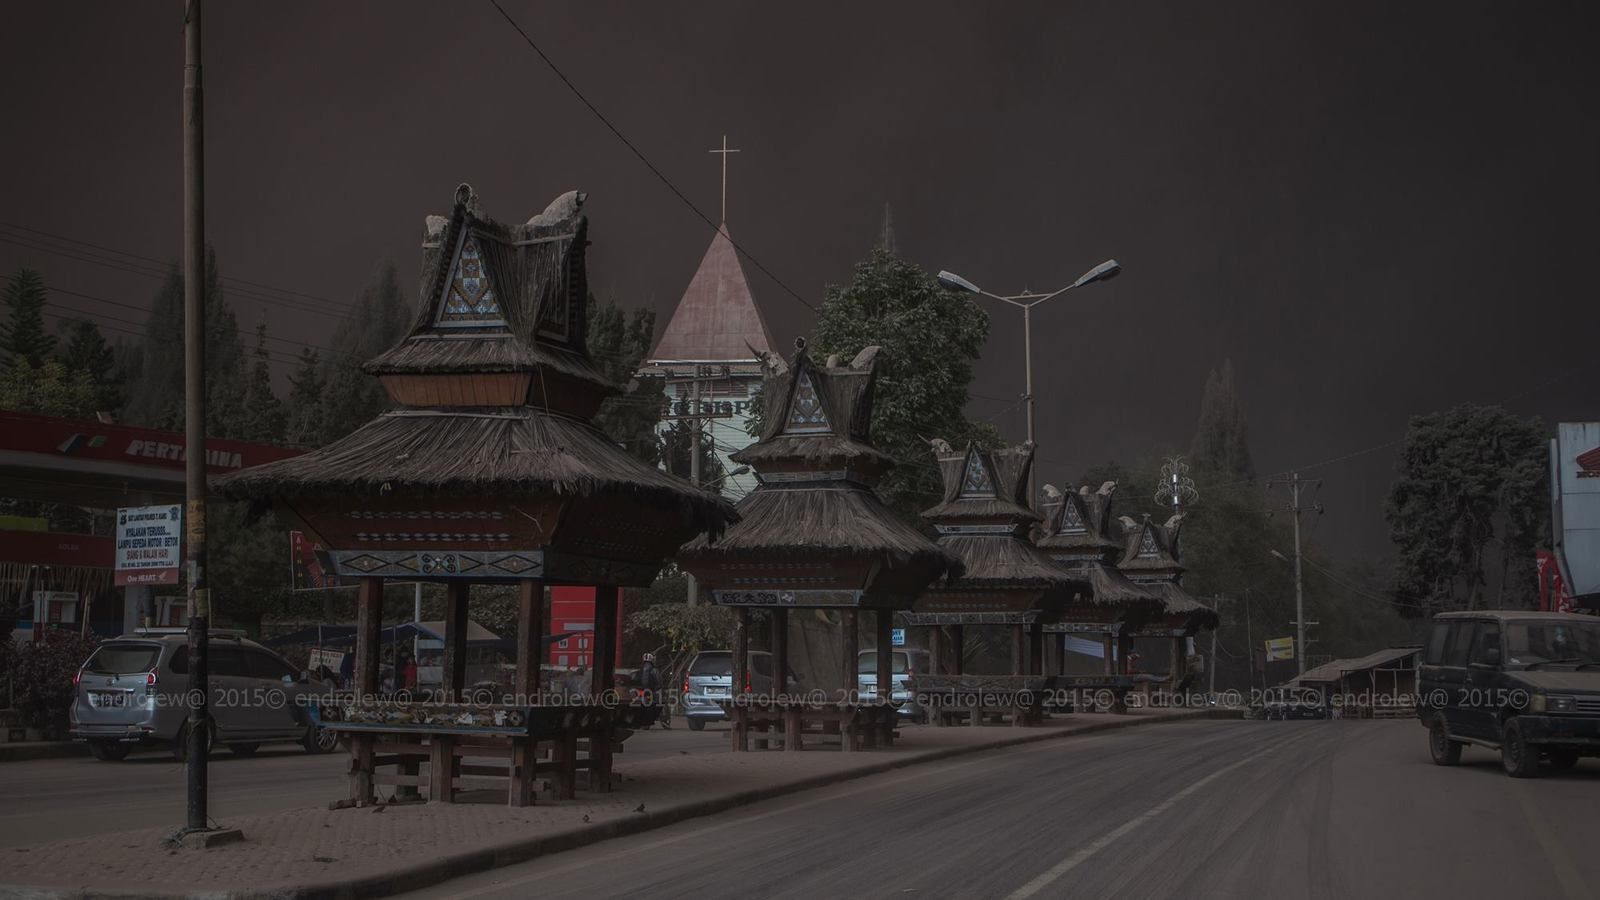 The village of Berastagi under the ashes, 06.25.2015 / 4:58 p.m. - photo endrolew@